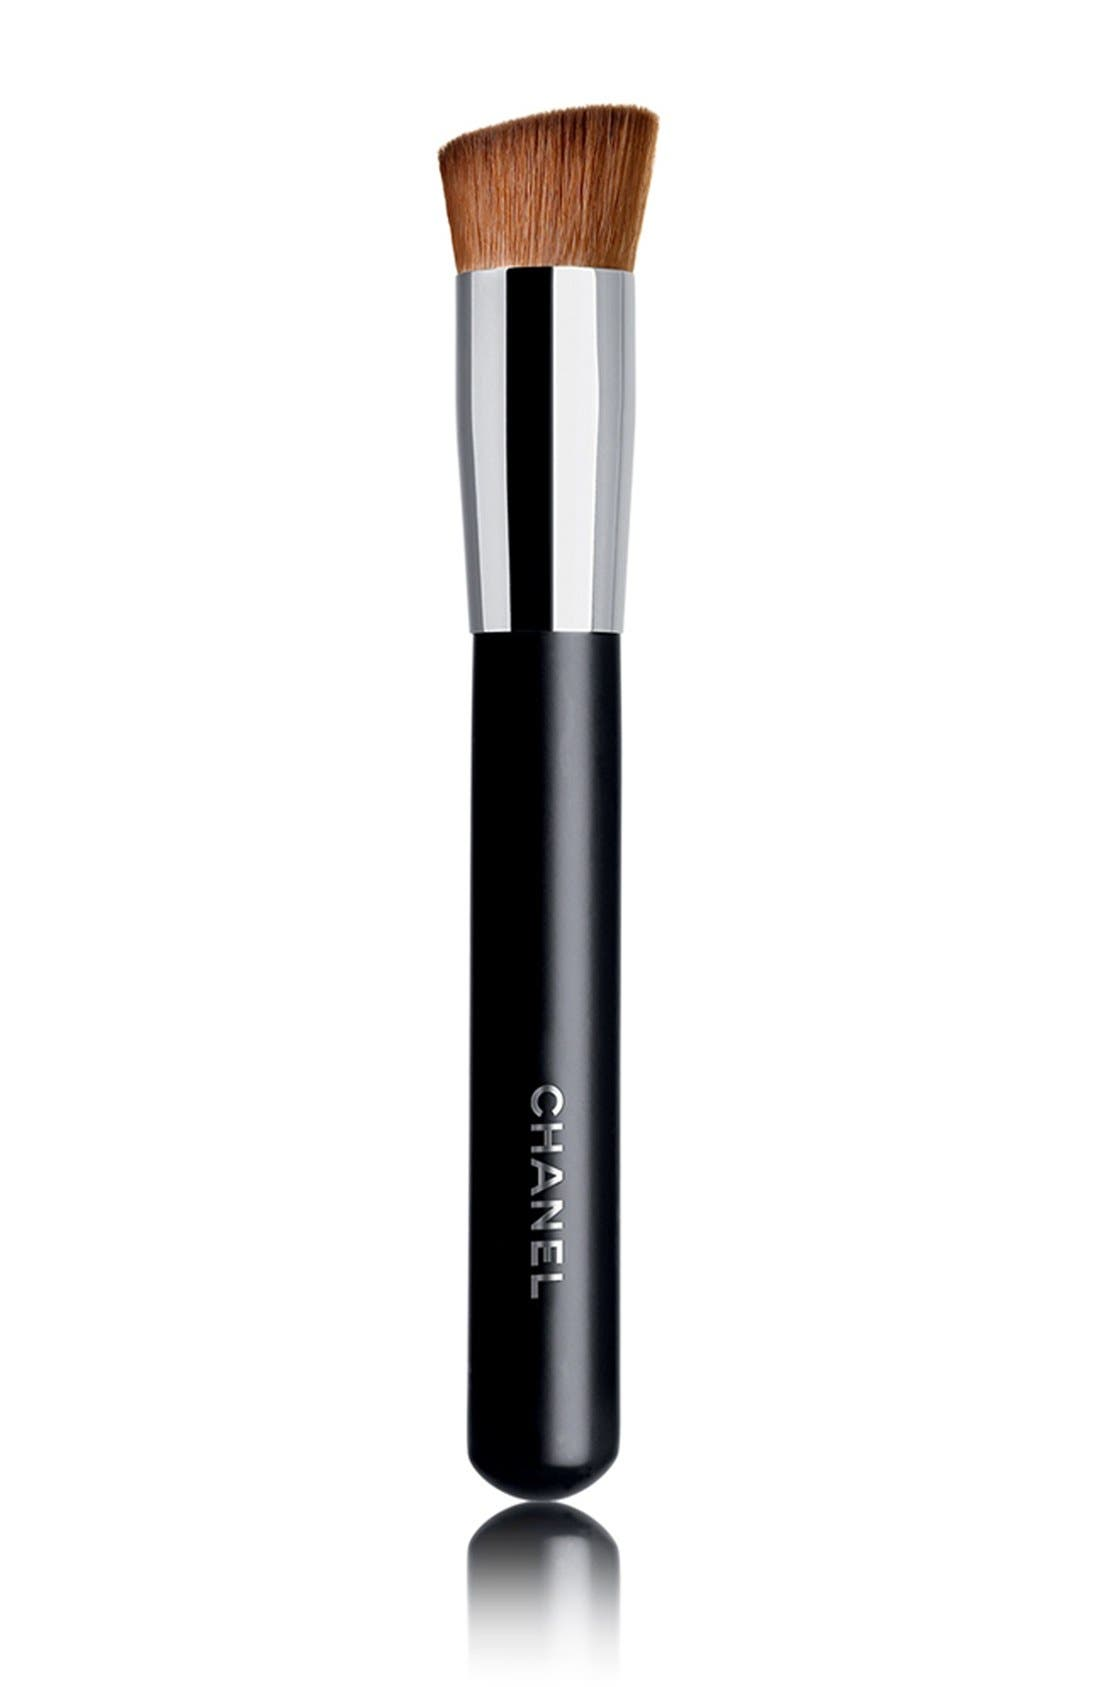 PINCEAU TEINT<br />2-in-1 Foundation Brush Fluid and Powder,                             Main thumbnail 1, color,                             000